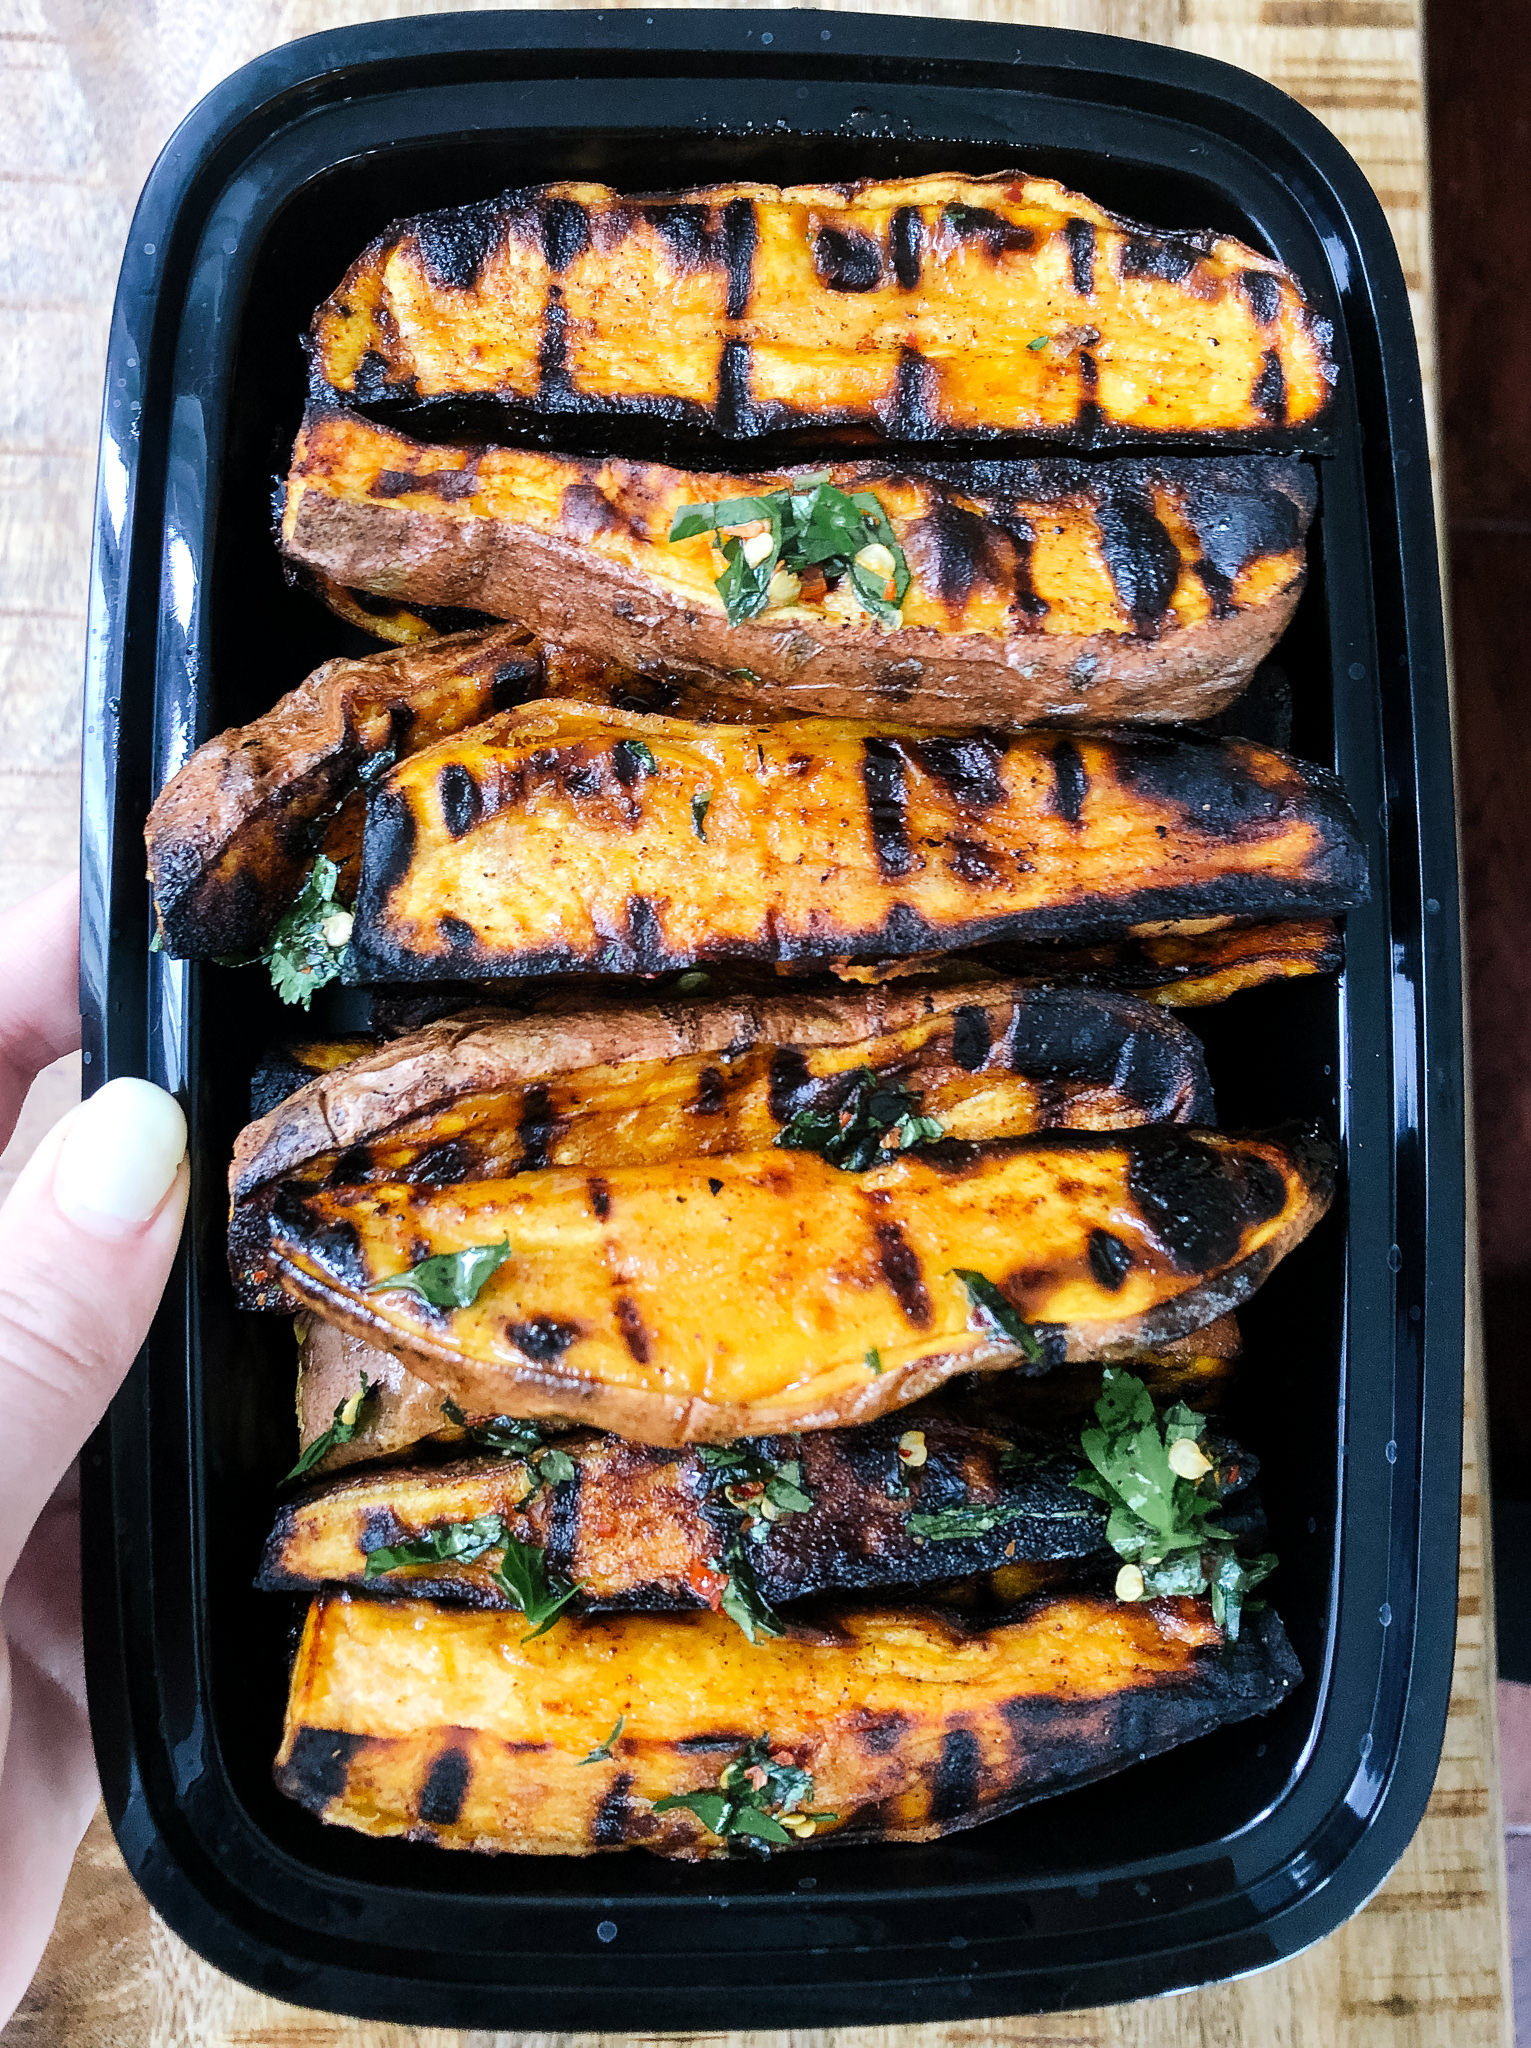 Grilled sweet potato wedges with mixed her dressing is  a simple summer side dish that will round out any barbecue. This healthy, whole30 and paleo friendly side dish comes together in less than 30 minutes and is delicious with burgers, hot dogs, steaks or grilled fish!